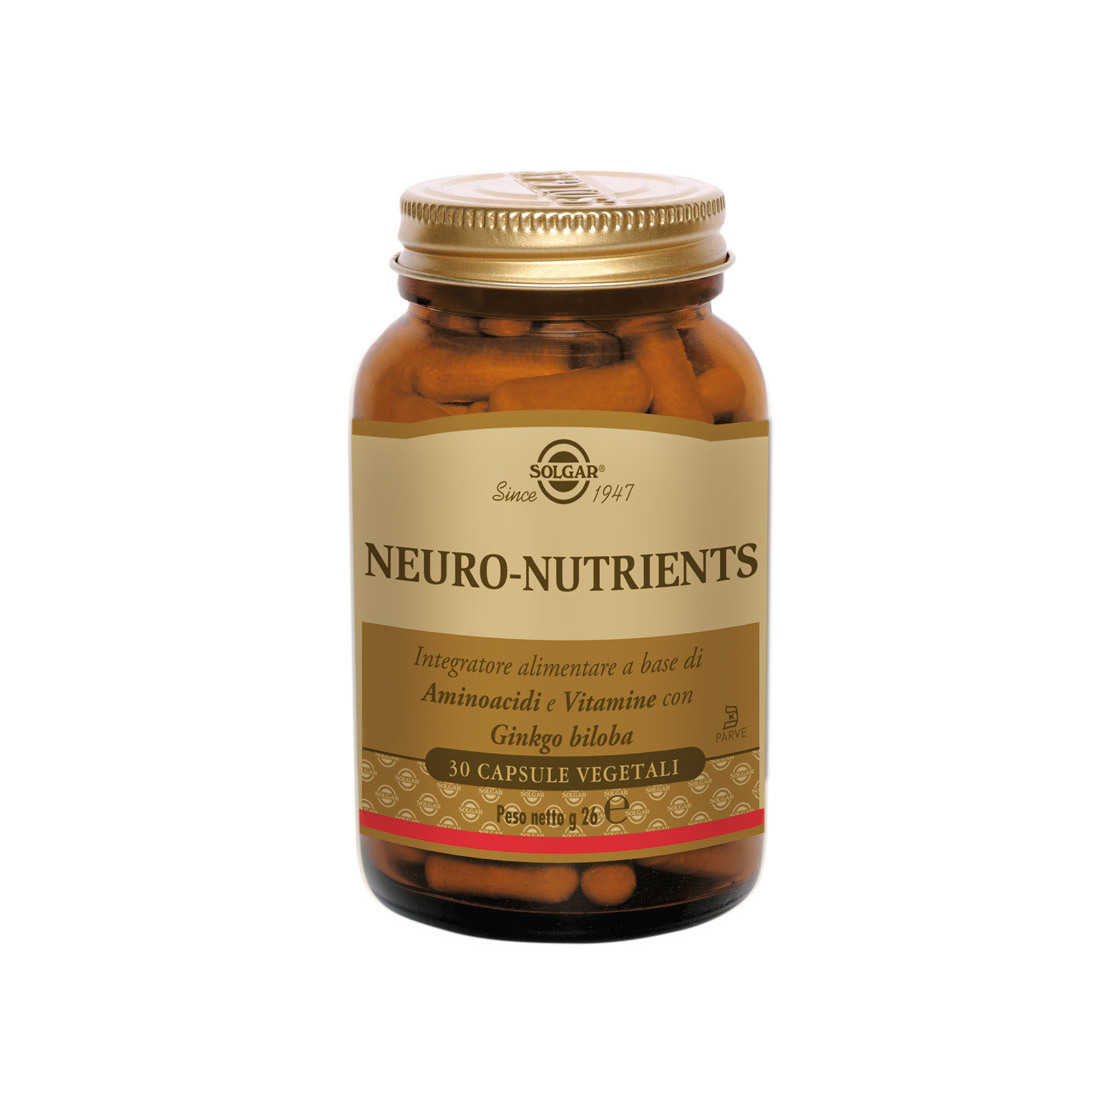 Solgar - Neuro-nutrients - Integratore Alimentare